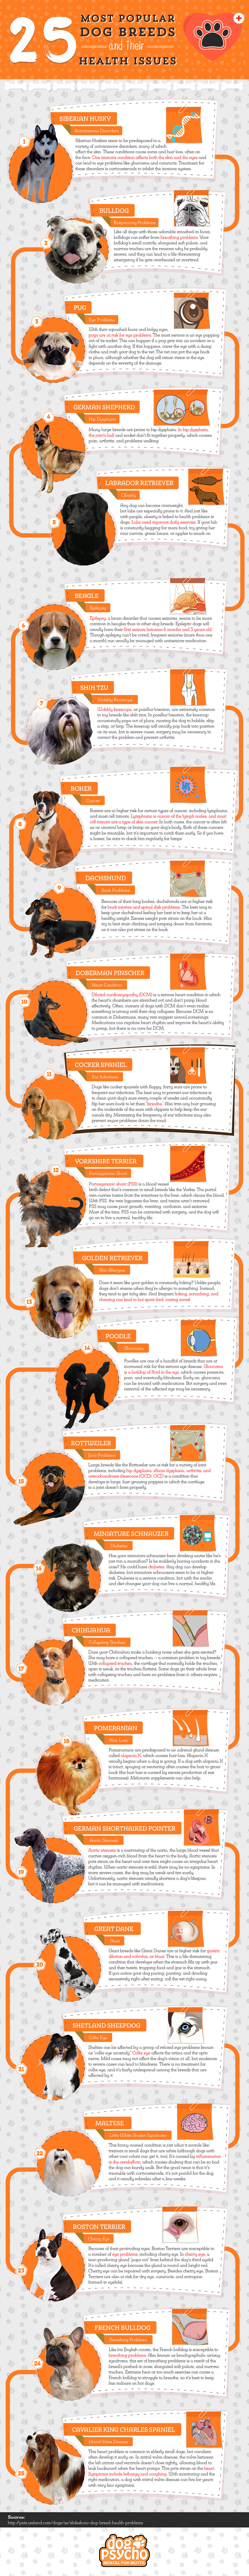 25 Most Popular Dog Breeds and Their Health Issues Infographic